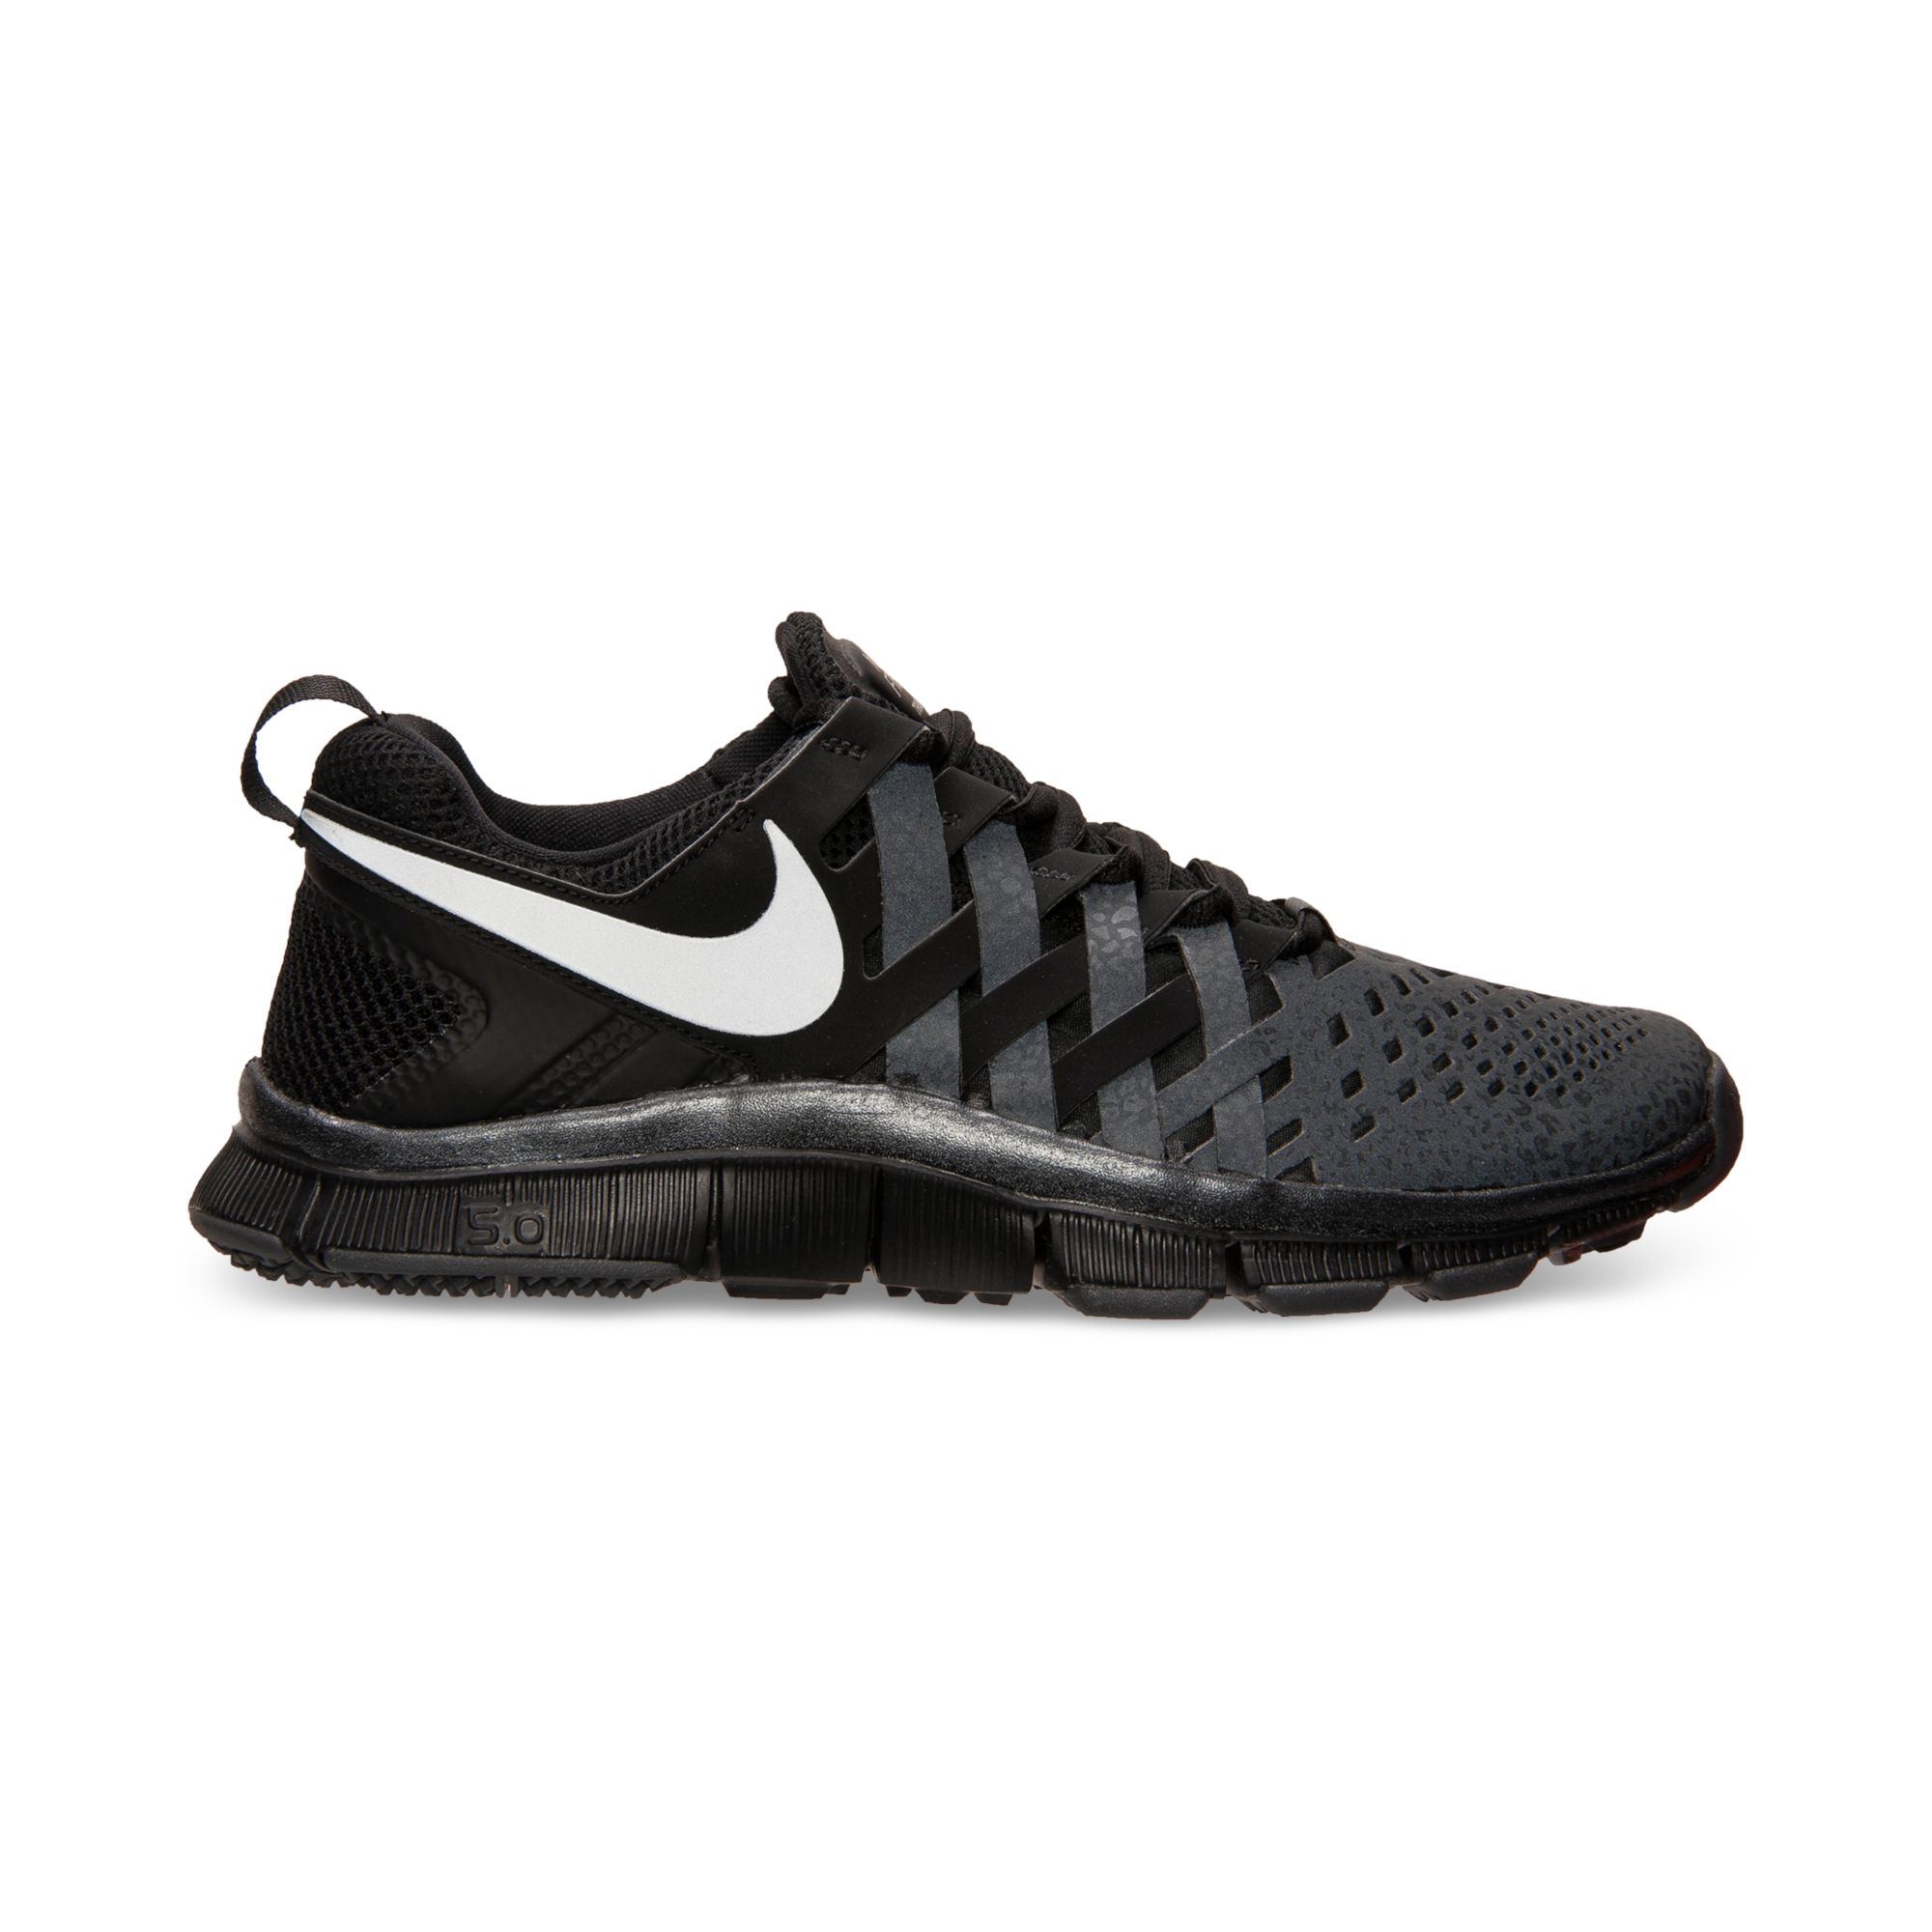 Lyst - Nike Mens Free Trainer 50 Training Sneakers From ...